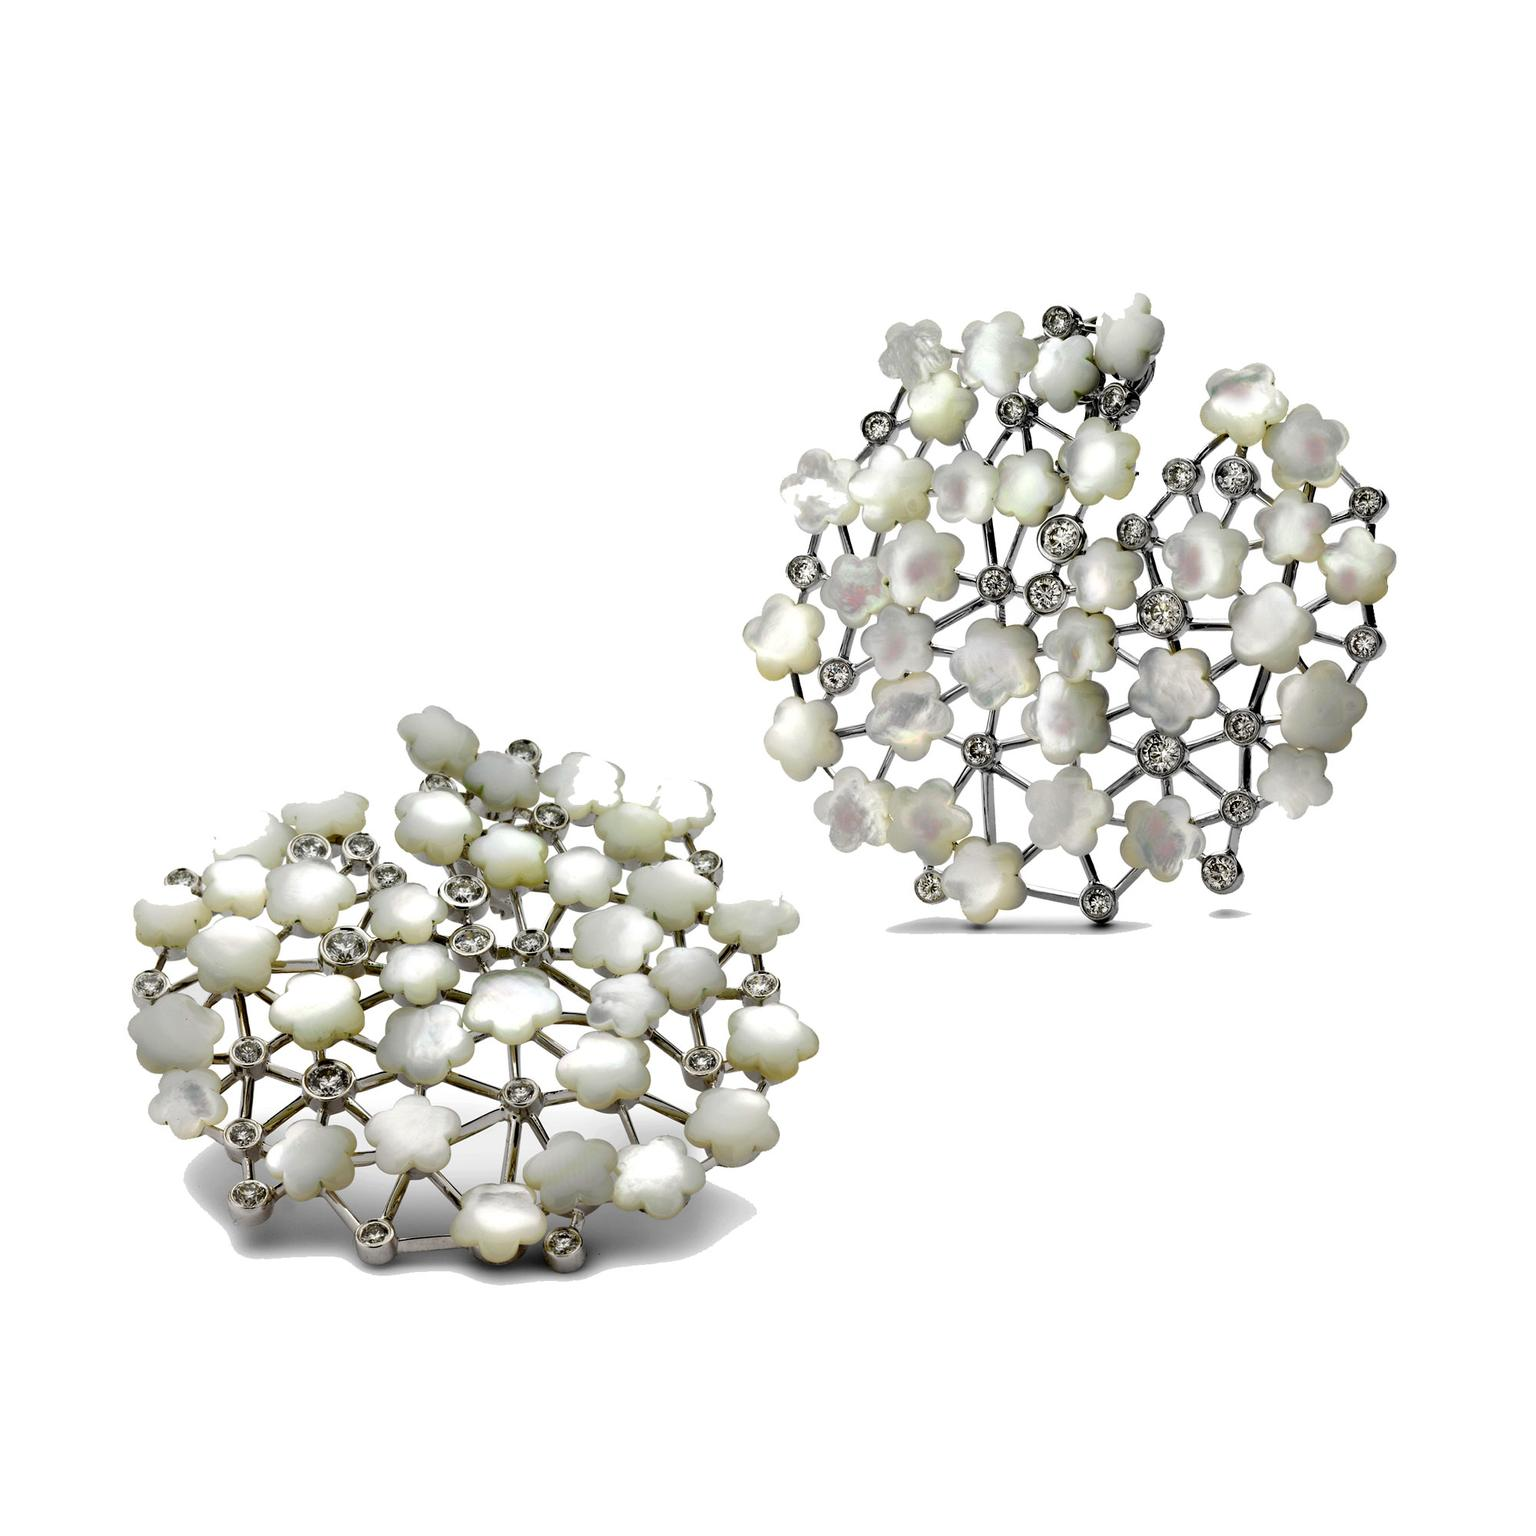 Fei Liu mother-of-pearl Asclepias earrings/hair ornments